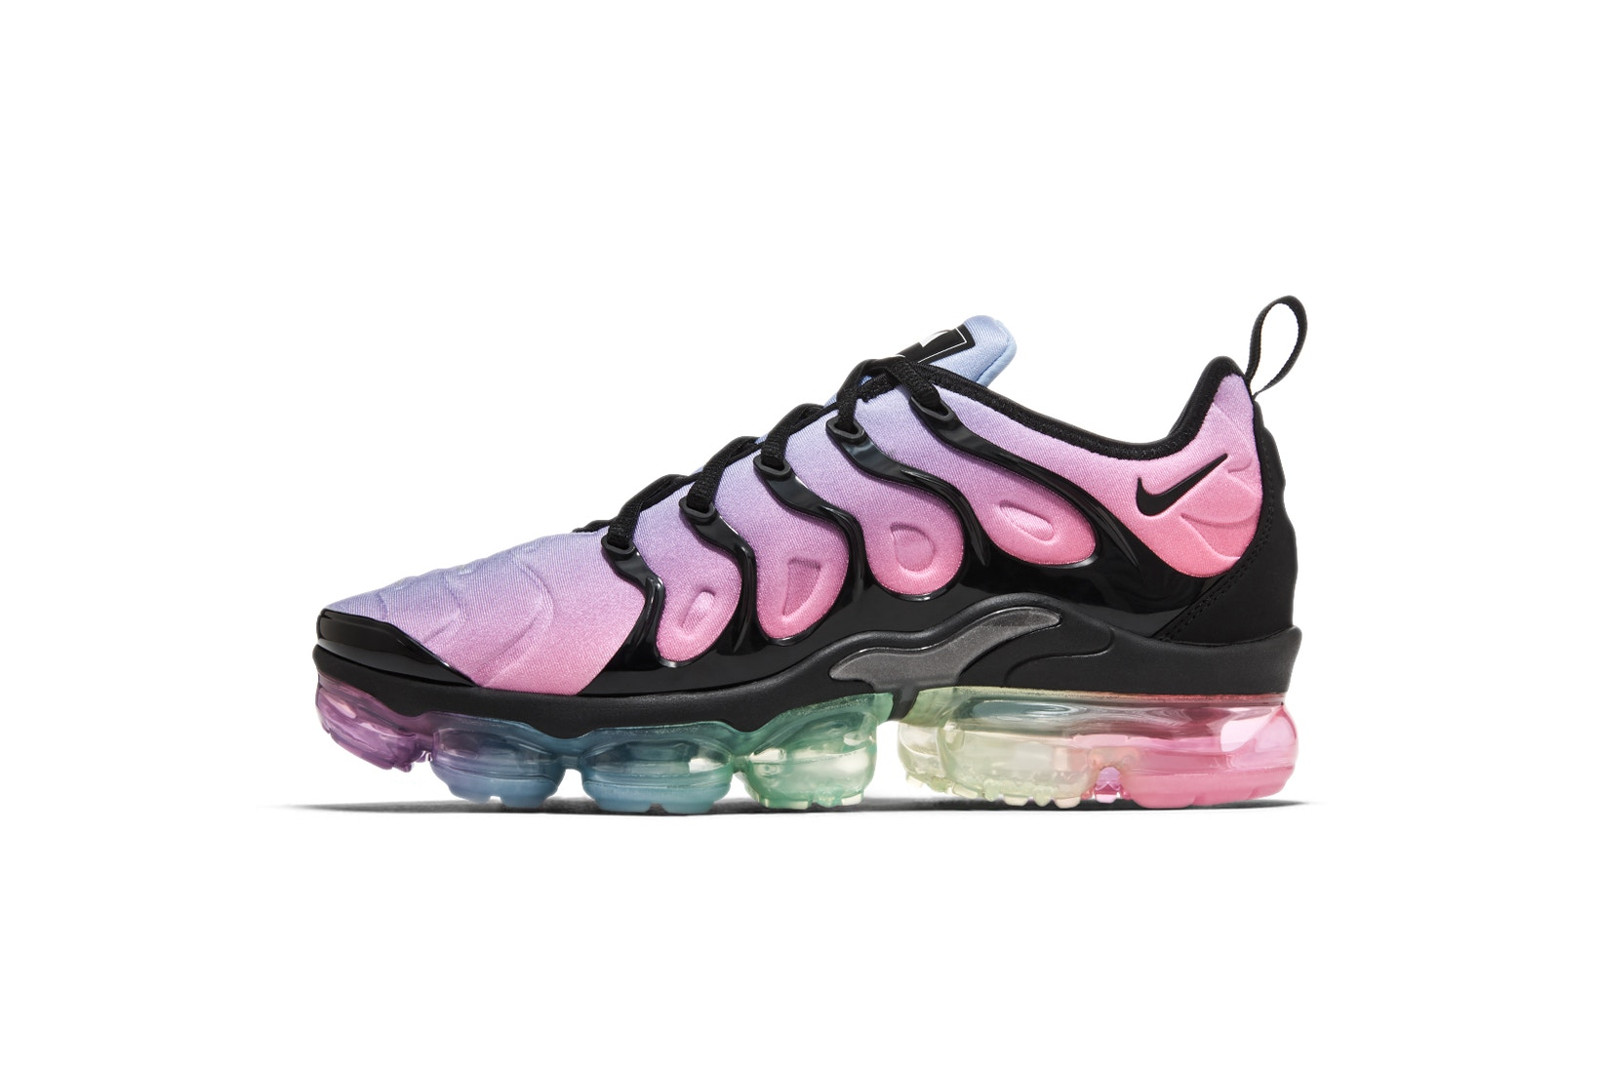 Nike BETRUE 2018 Air VaporMax Plus